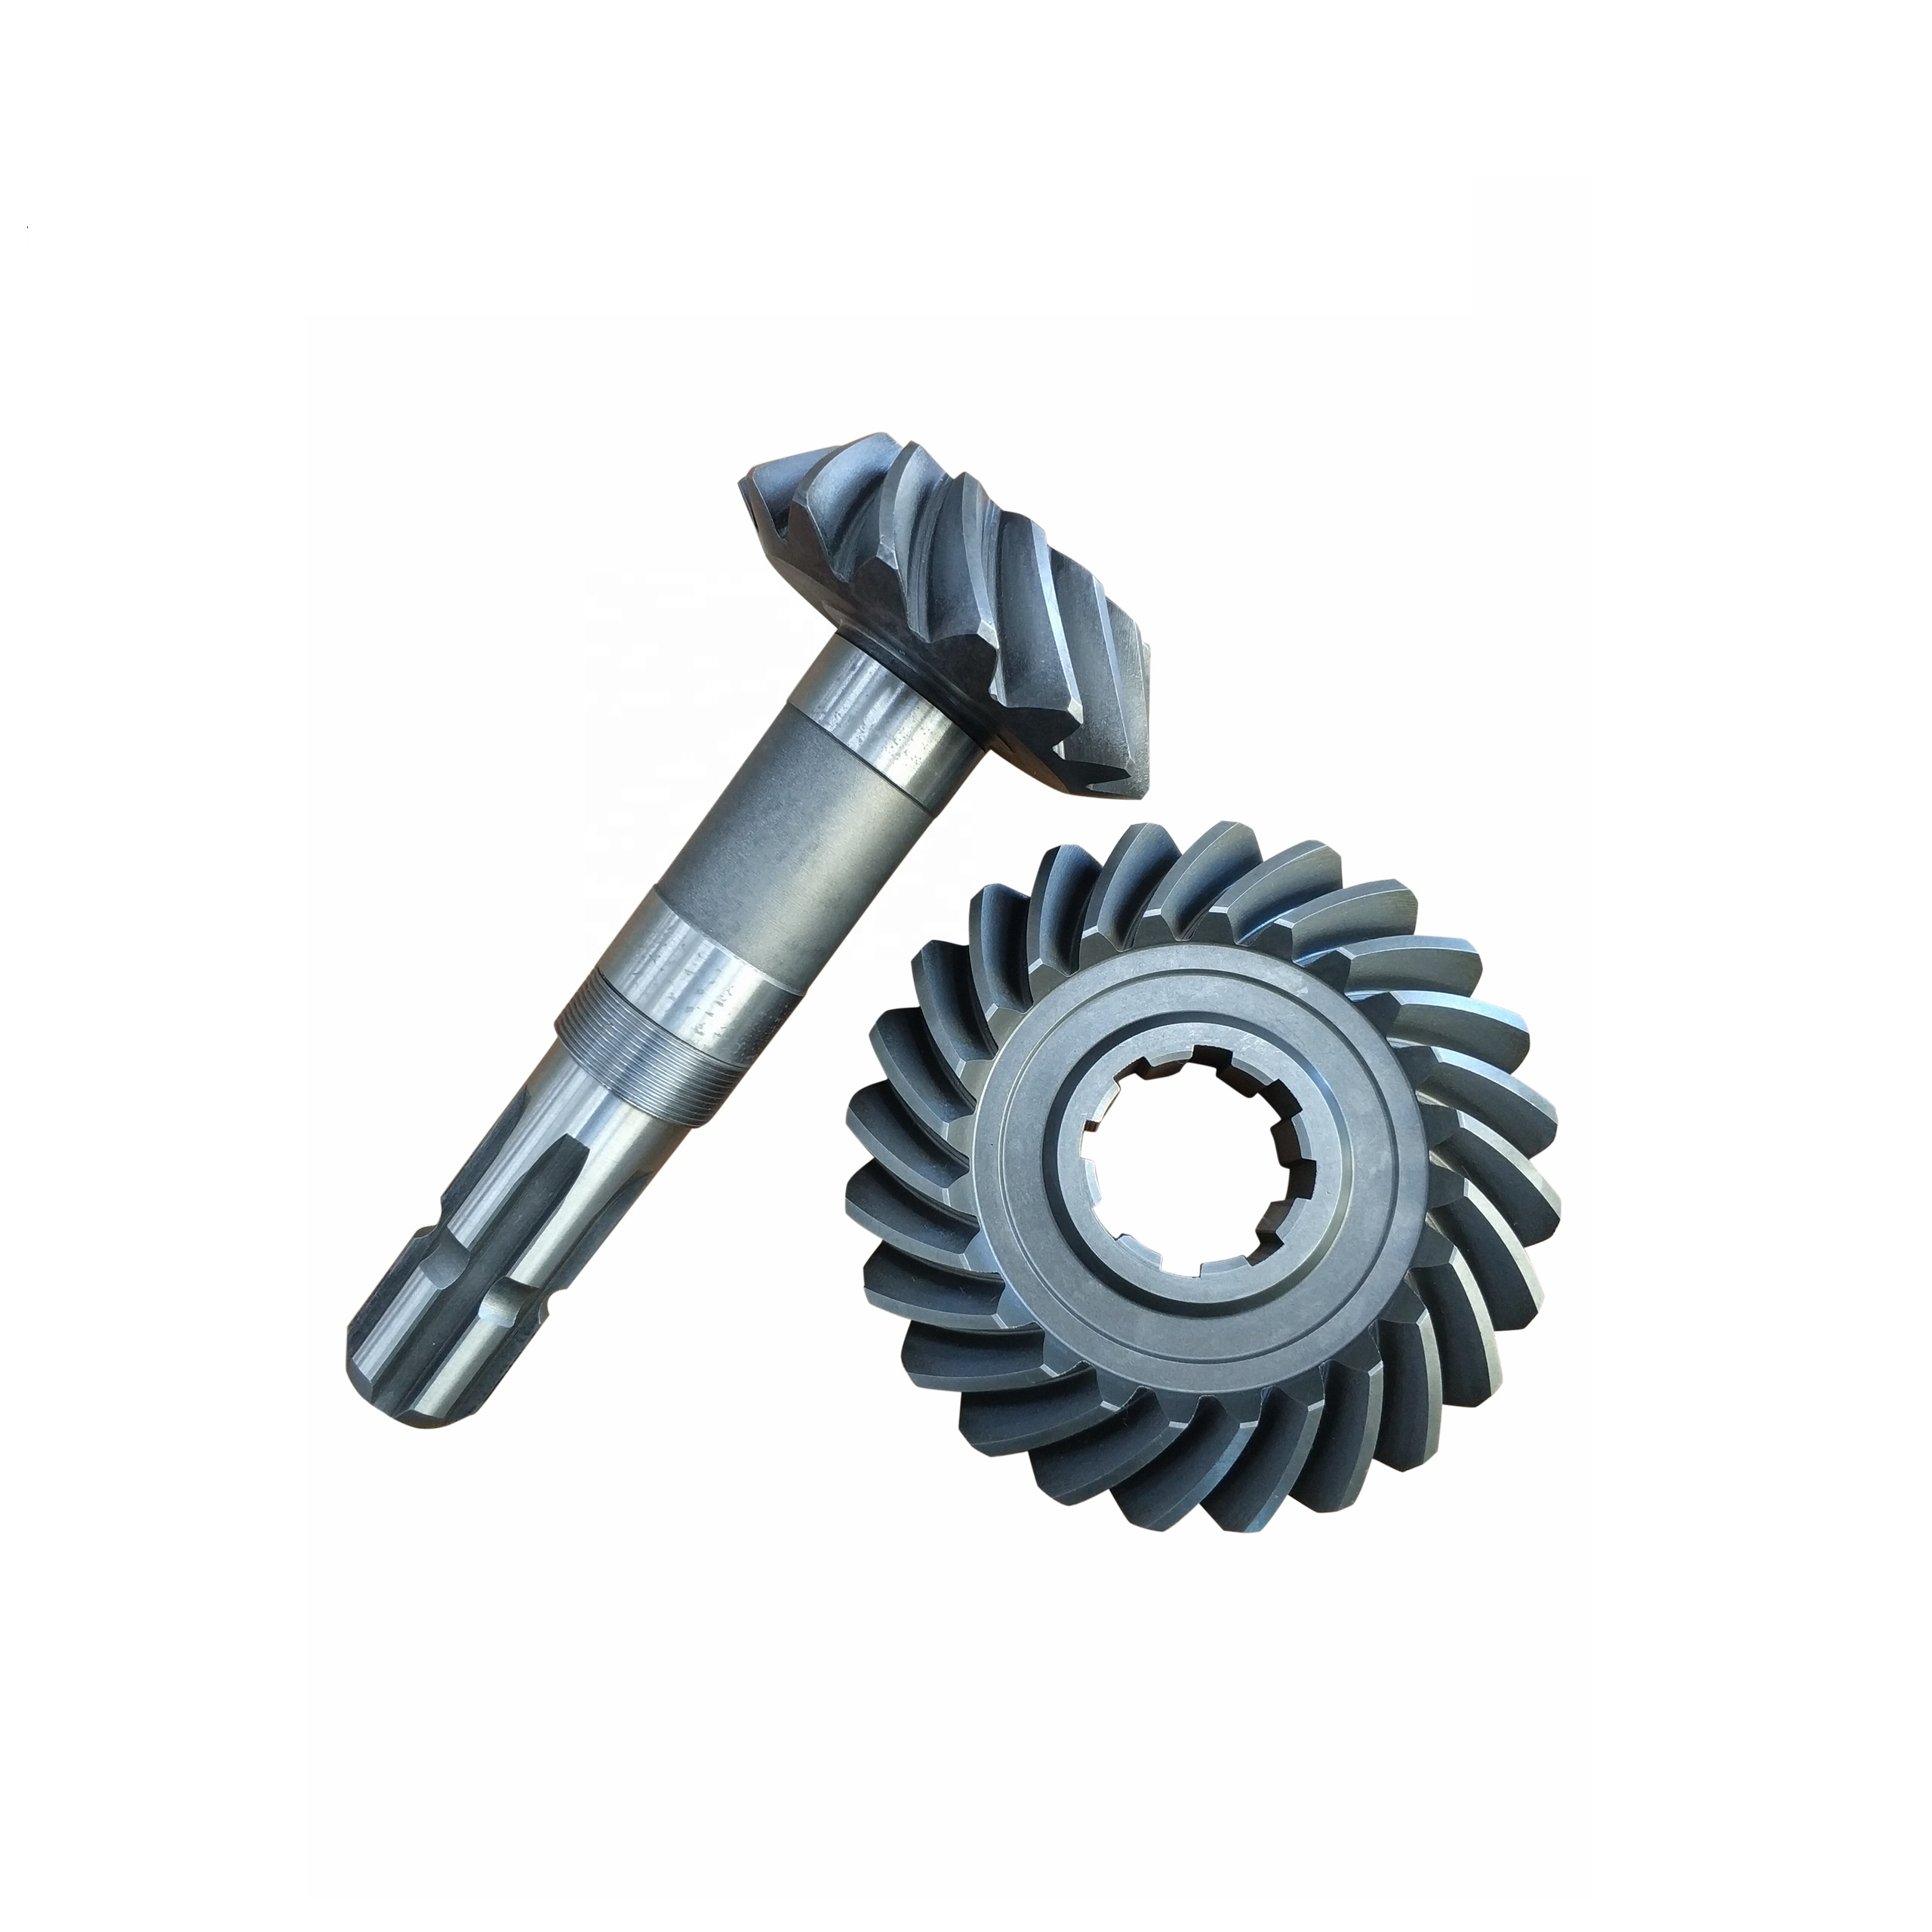 OEM high precision 20CrMnTi bevel <strong>gear</strong>/ helical <strong>gear</strong> steel spiral bevel <strong>gear</strong>